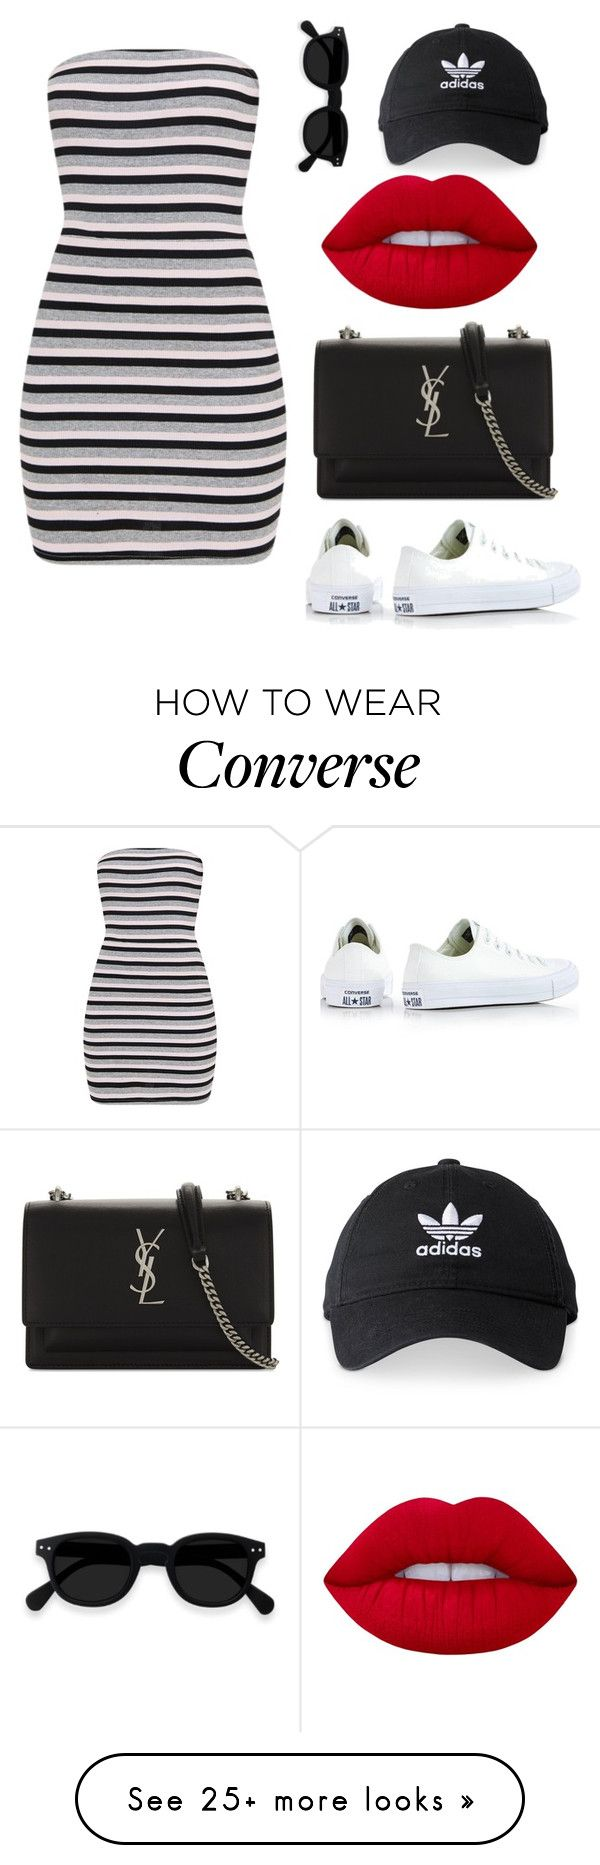 """""""So sexy"""" by grace-ooi on Polyvore featuring Converse, Yves Saint Laurent, adidas and Lime Crime"""